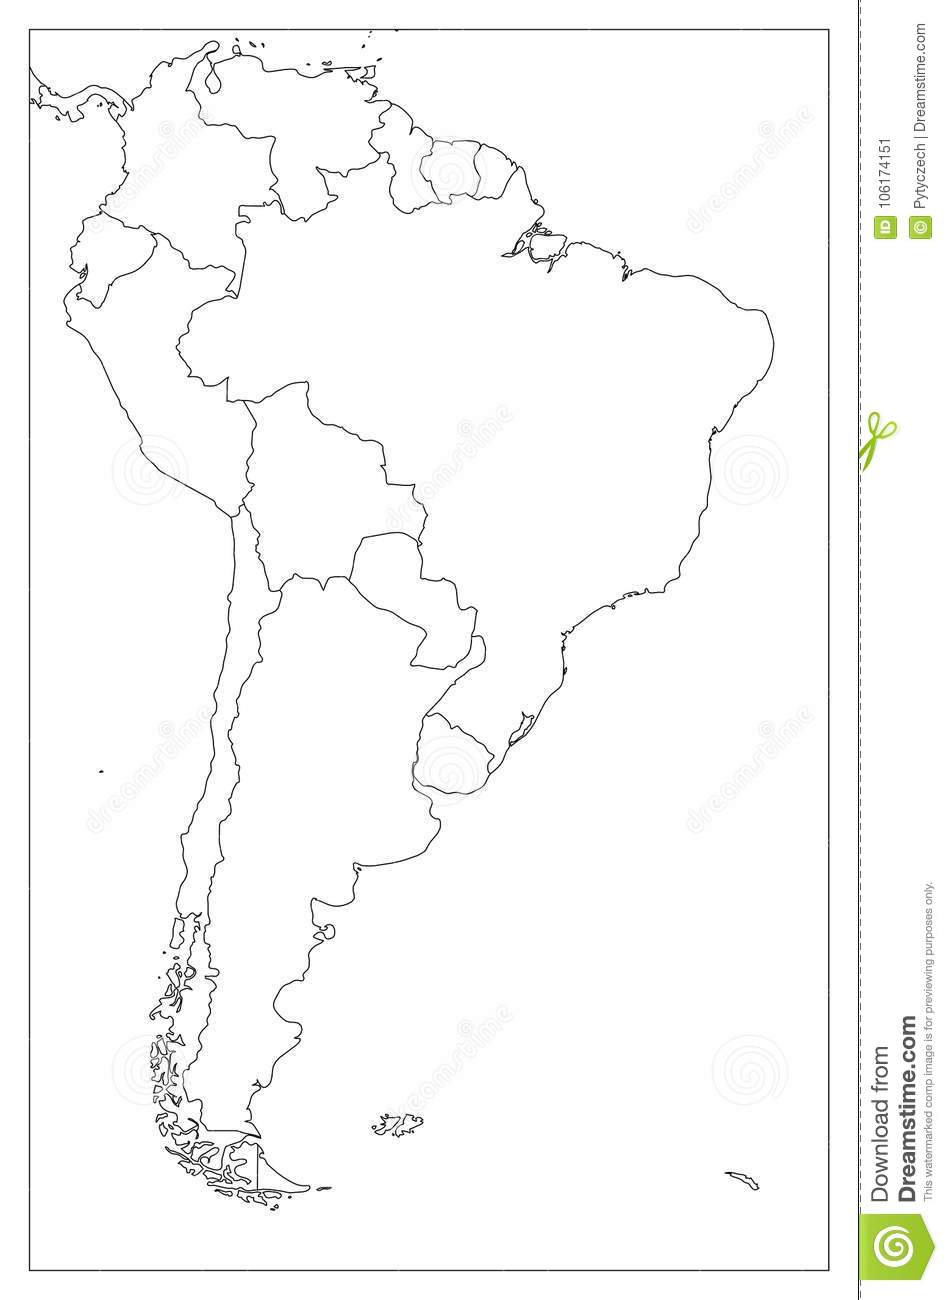 Blank Political Map Of South America Simple Flat Vector Outline Map - Blank-political-map-of-us